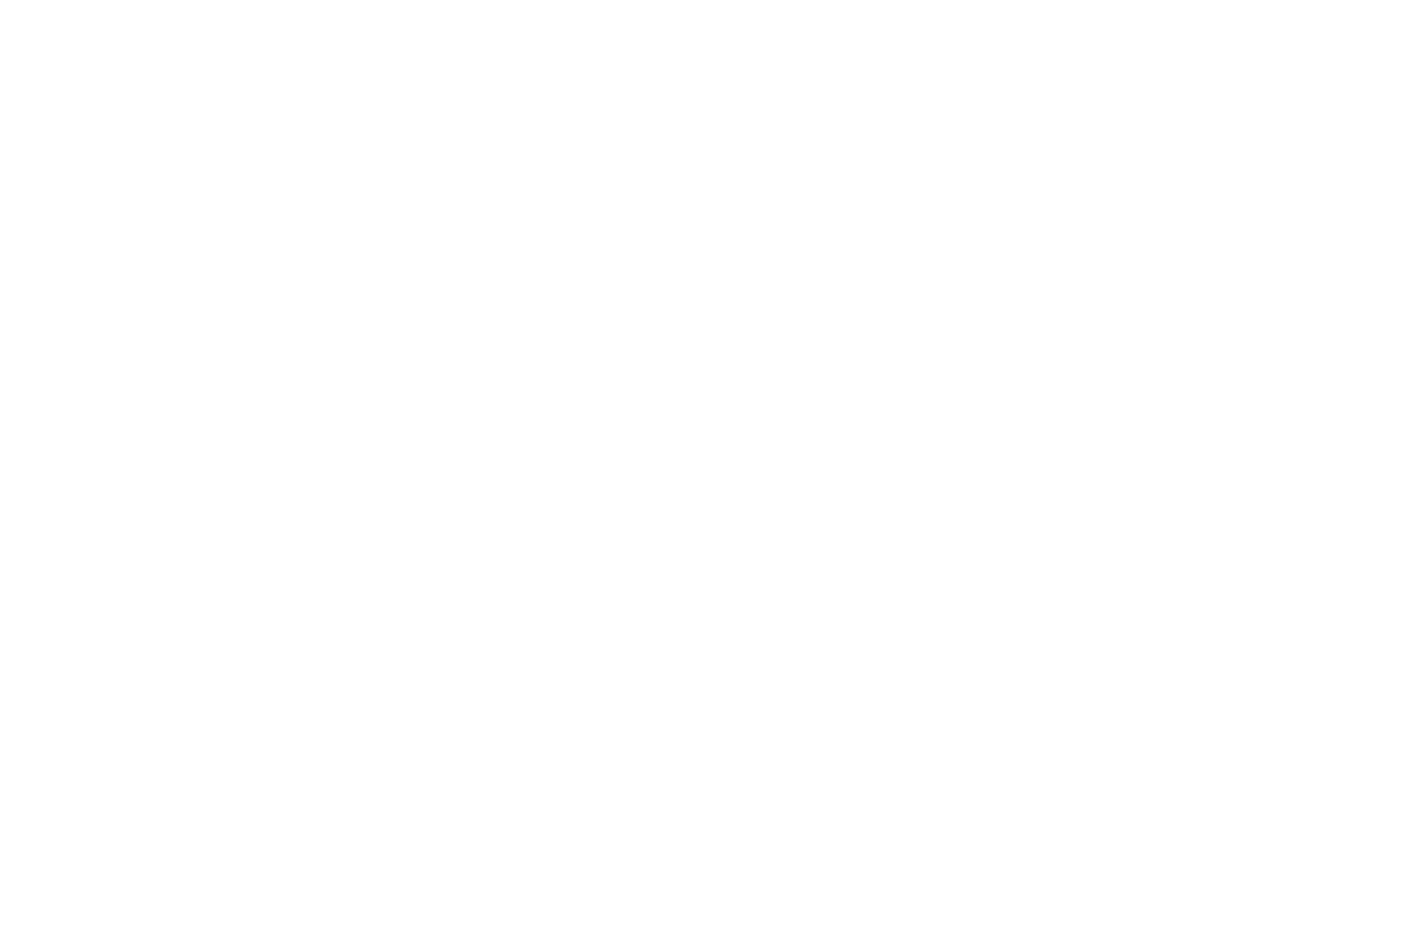 Selwood Scribe Services